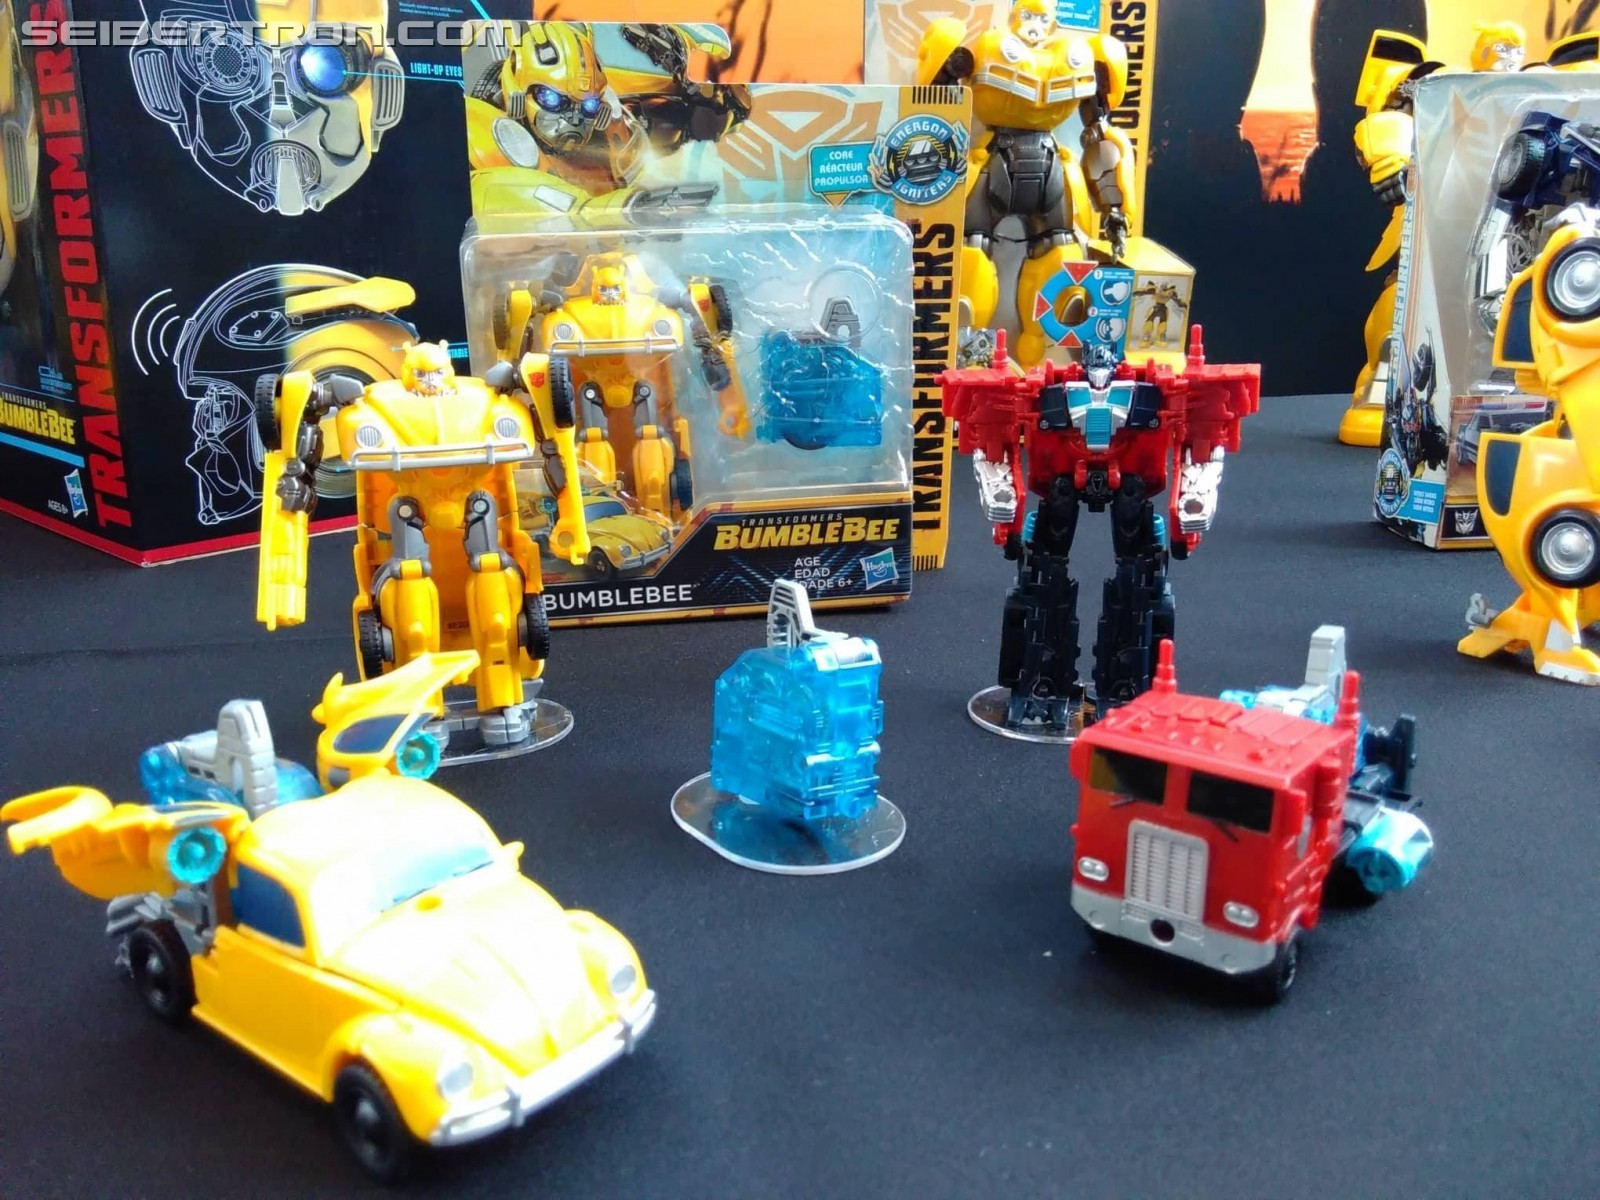 Bumblebe Movie Toys on Display at SDCC 2018 including Target ...